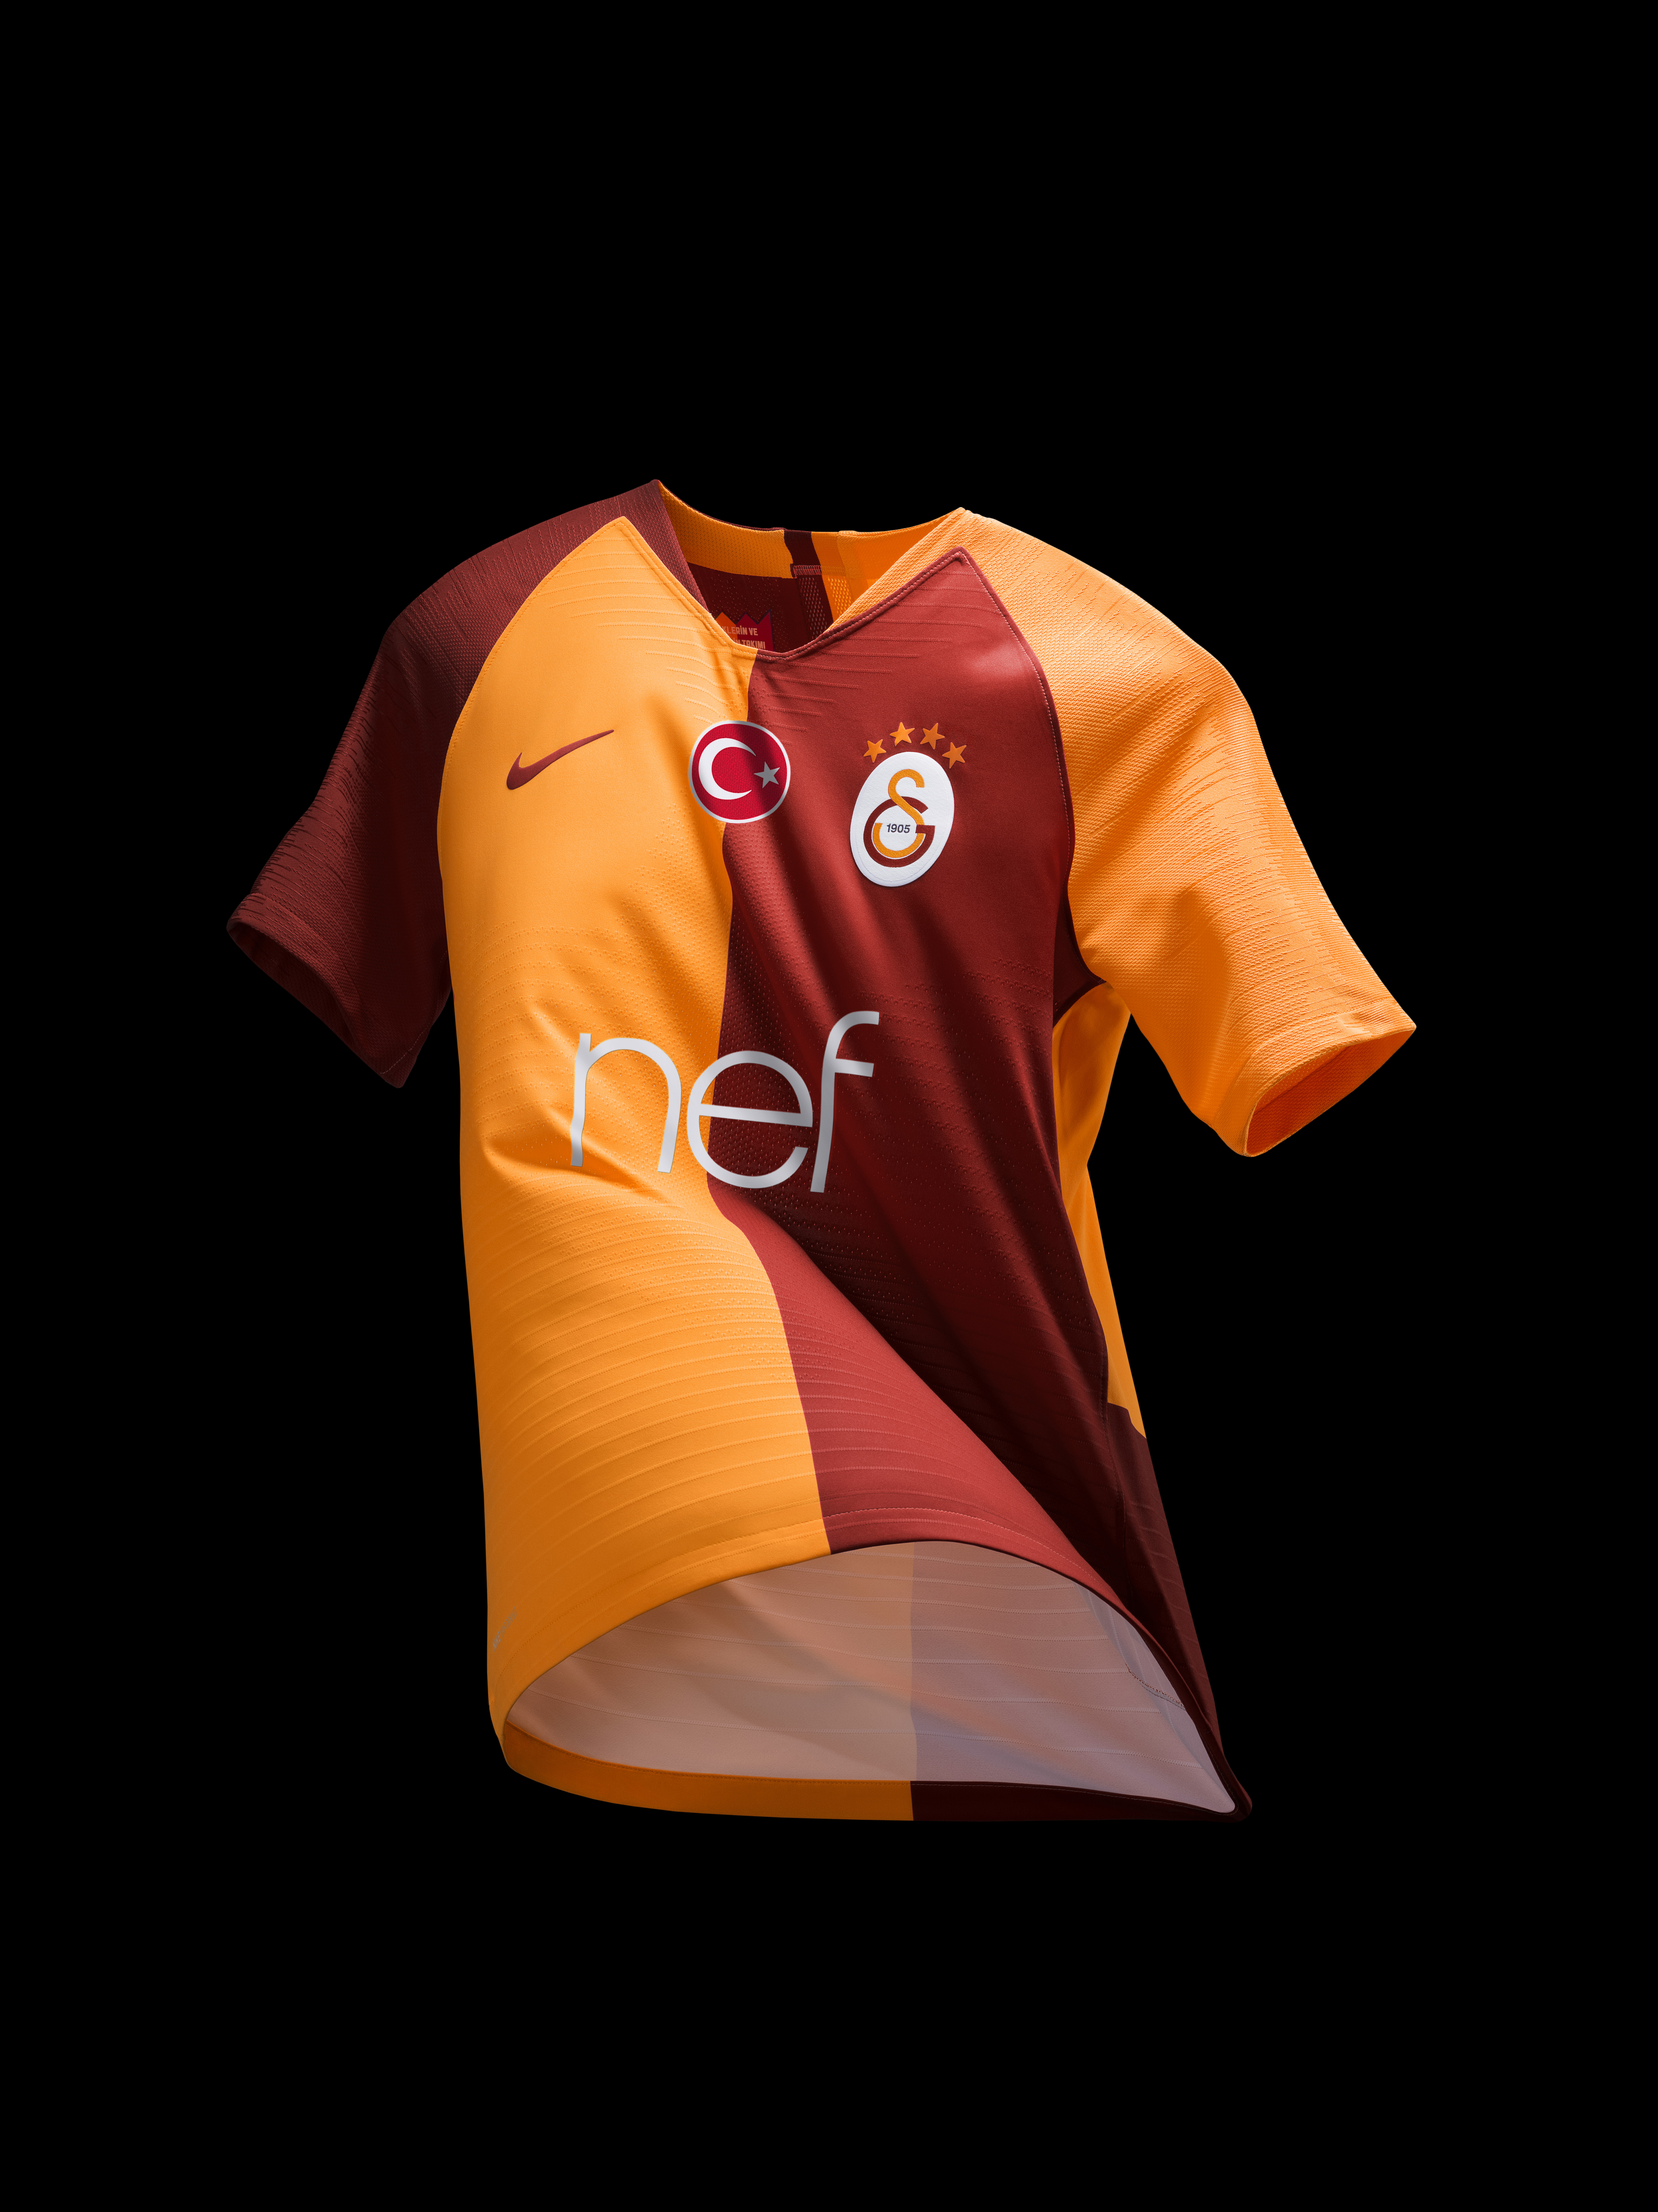 best jersey in pes 2018 android